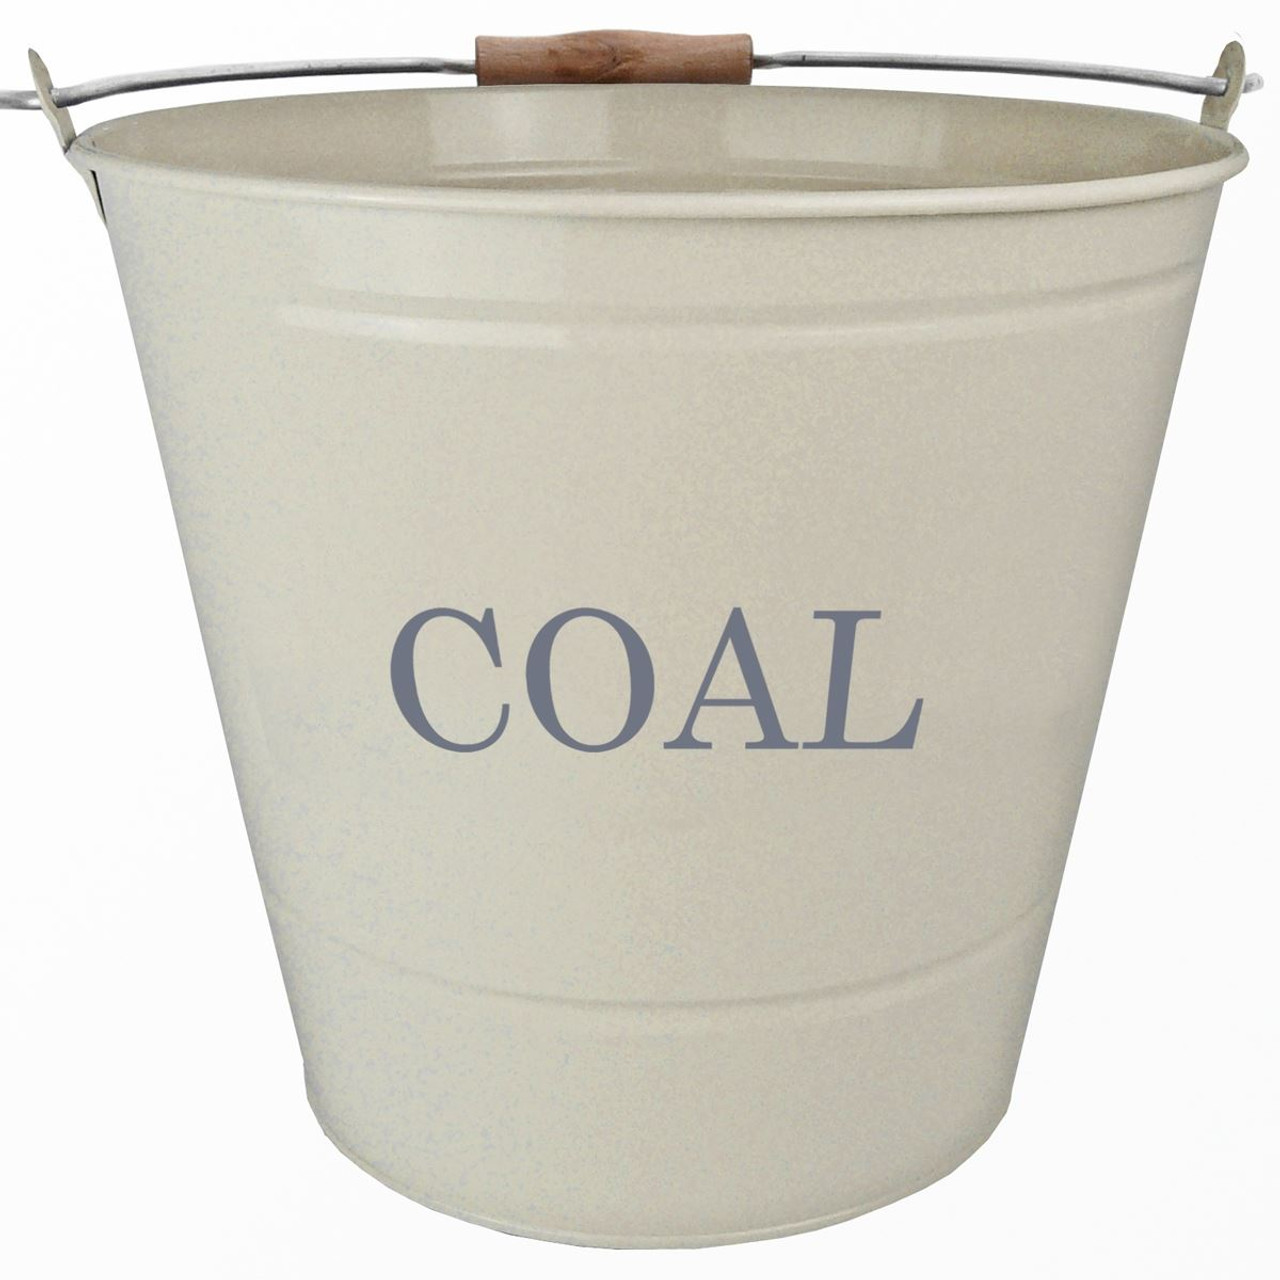 Manor Fireside Coal Bucket